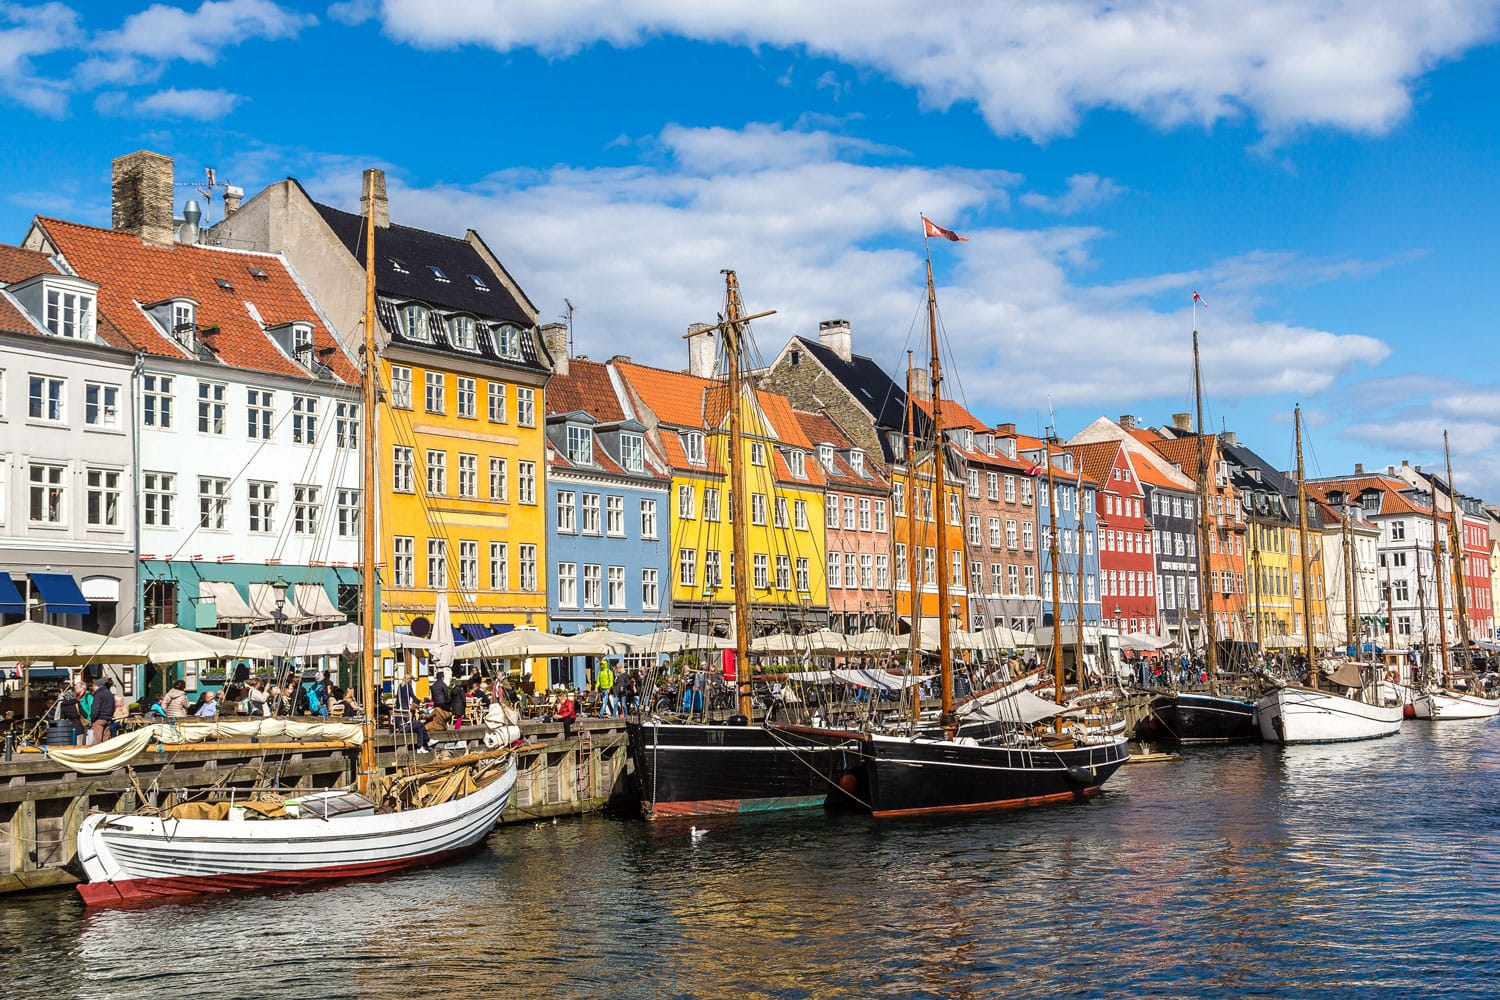 Nyhavn district in Copenhagen, Denmark